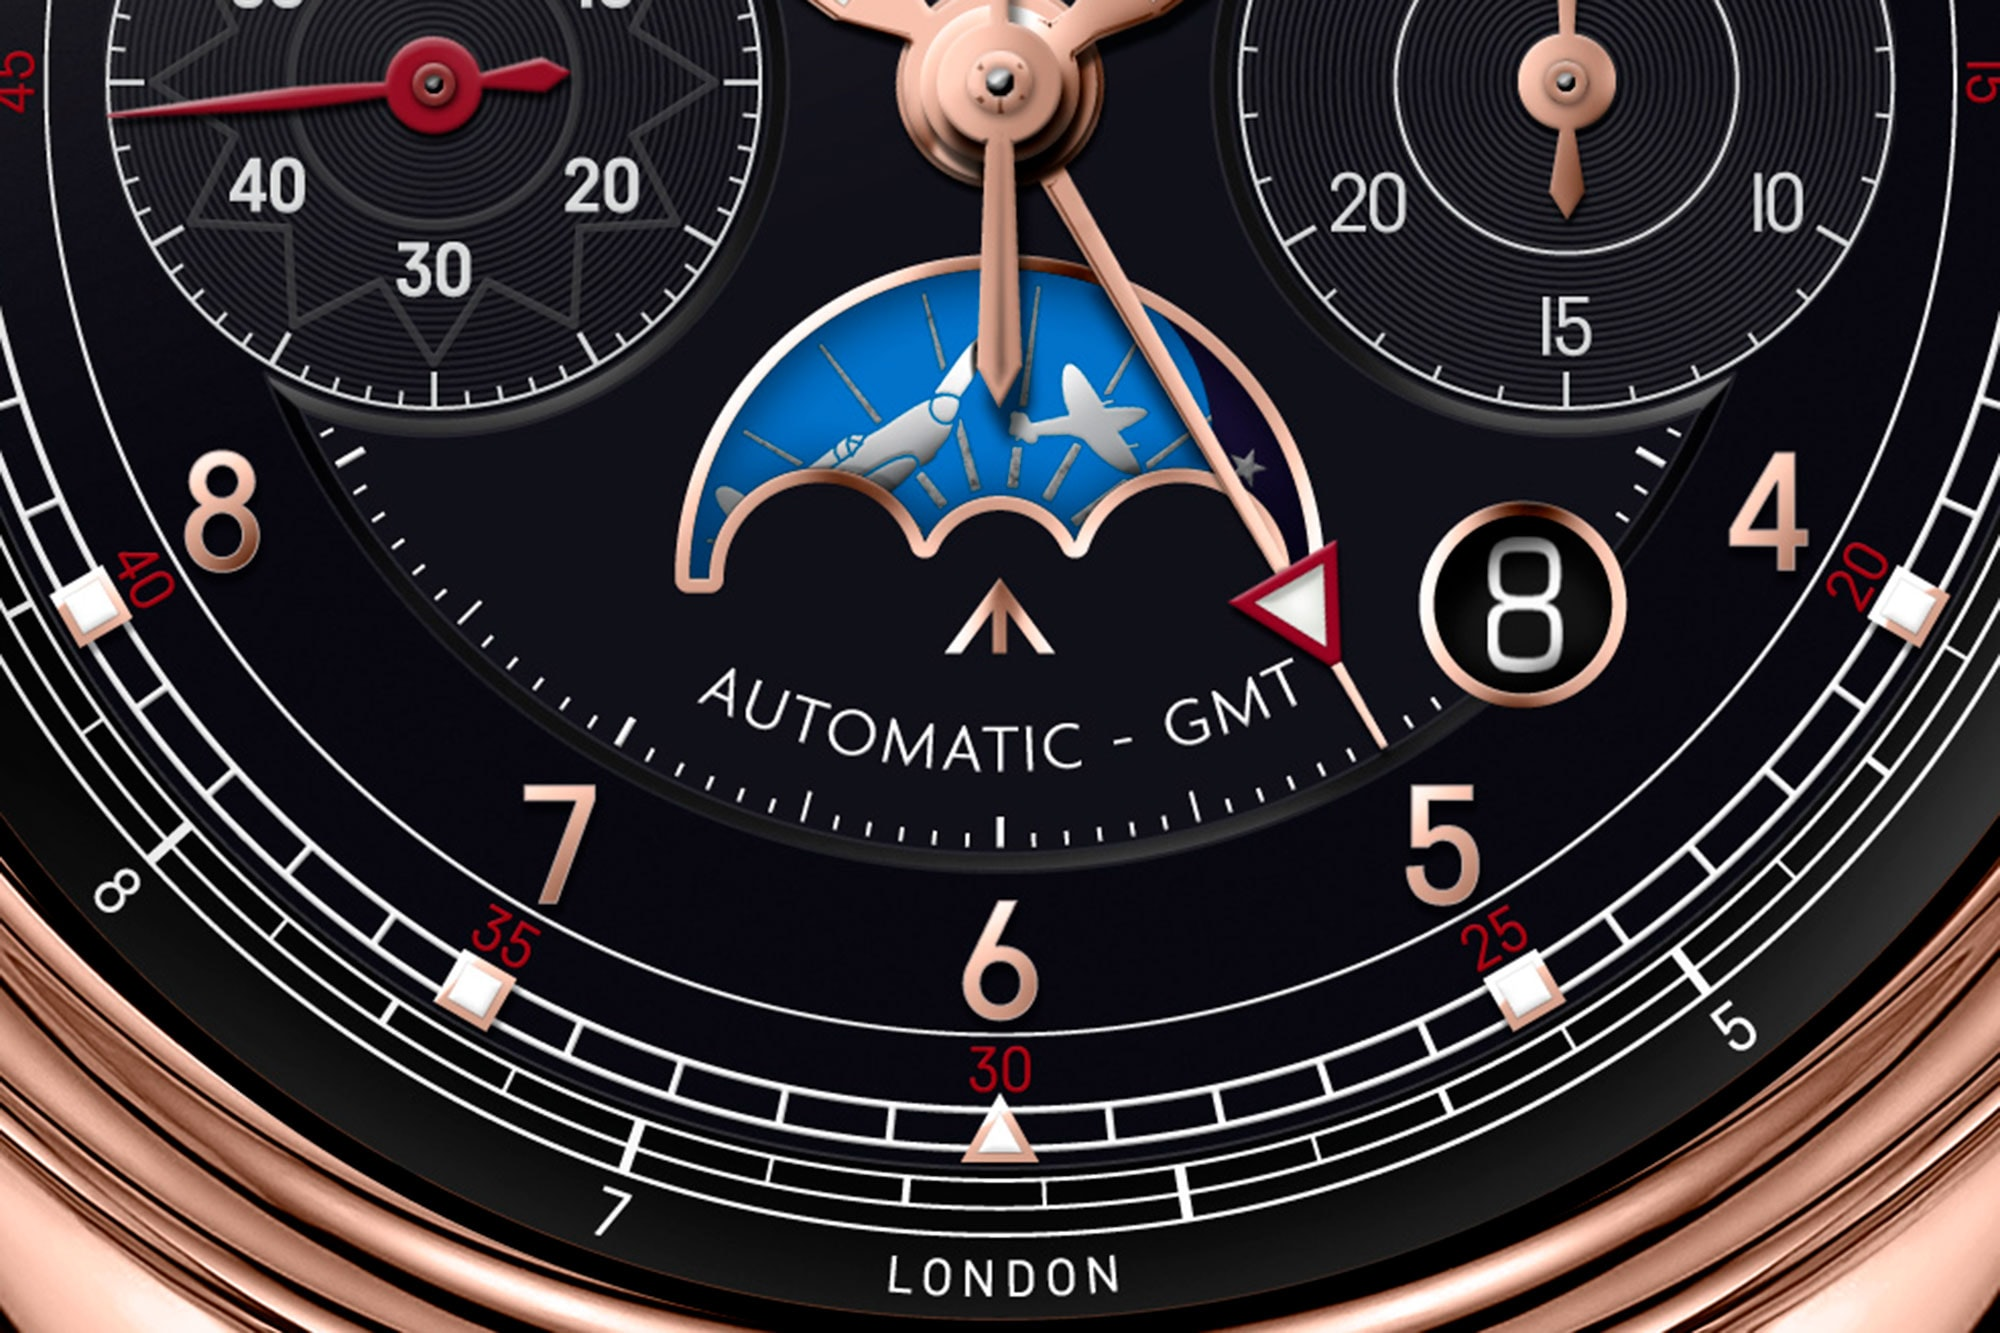 bremont 1918 limited edition dial detail Introducing: The Bremont 1918 Limited Edition Chronograph Introducing: The Bremont 1918 Limited Edition Chronograph bremont 04